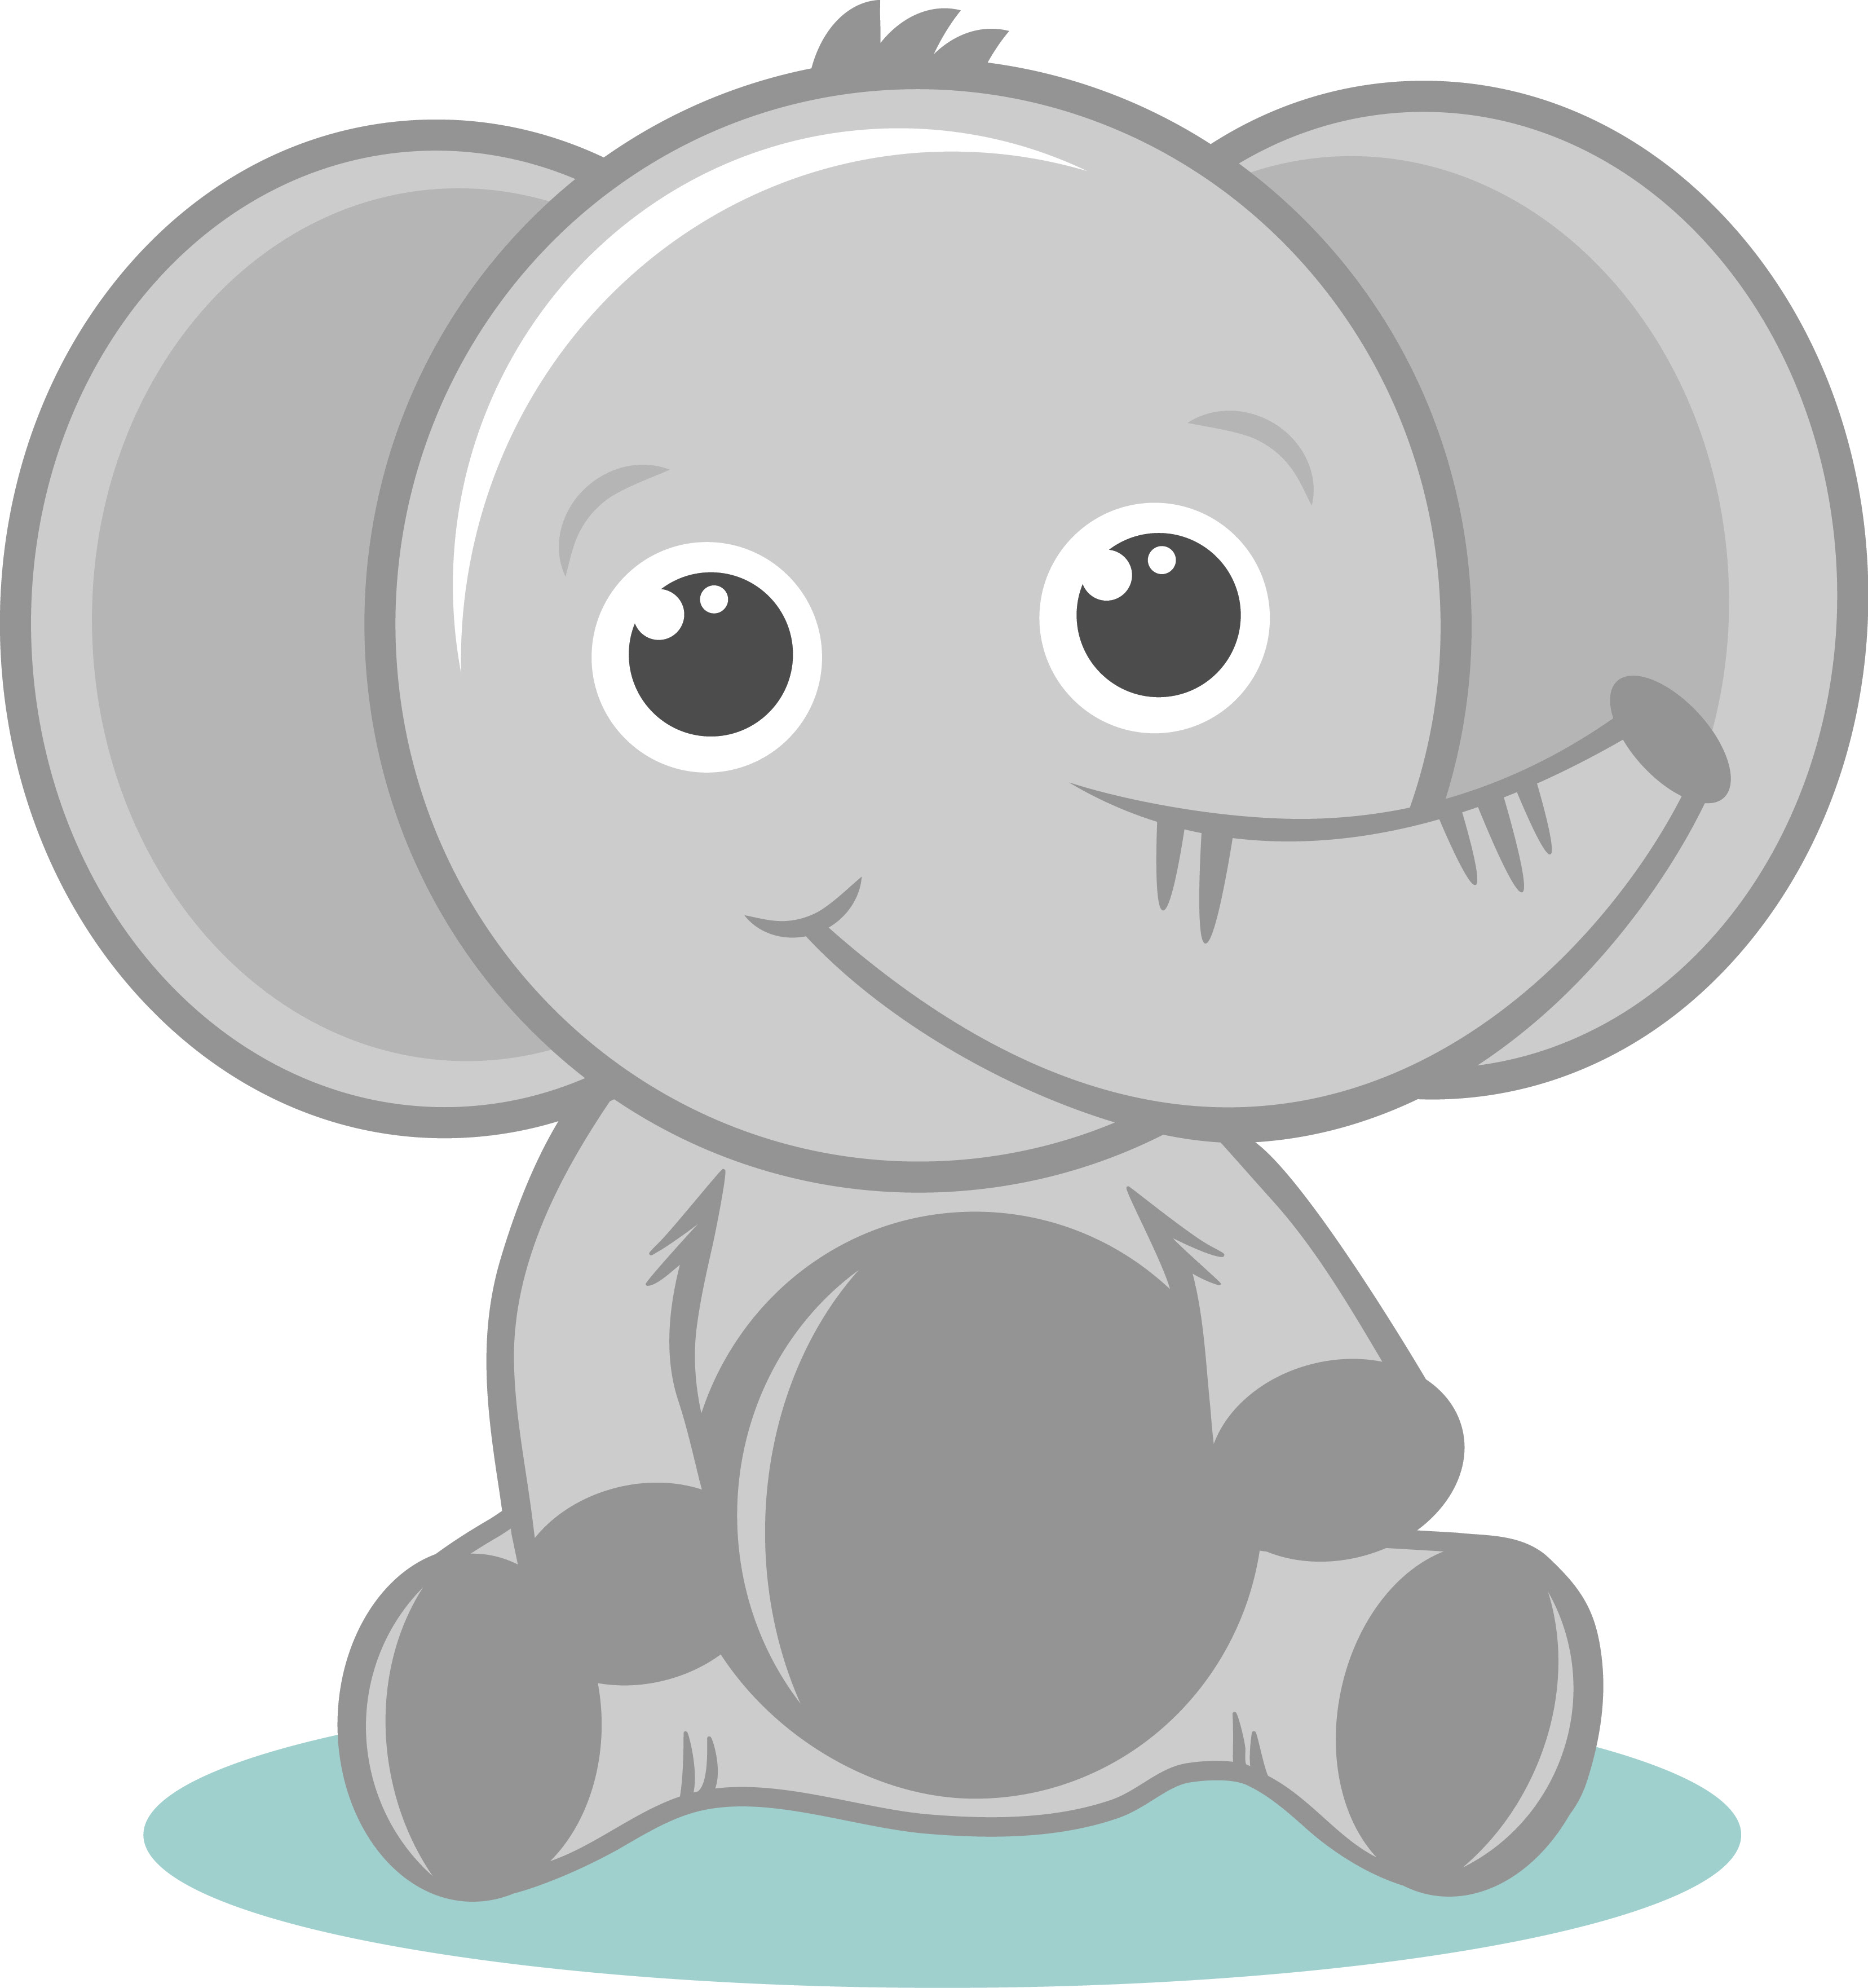 Download Cute Elephant Cartoon Png Png Gif Base Search and download free hd elephant png images with transparent background online from lovepik.com. download cute elephant cartoon png